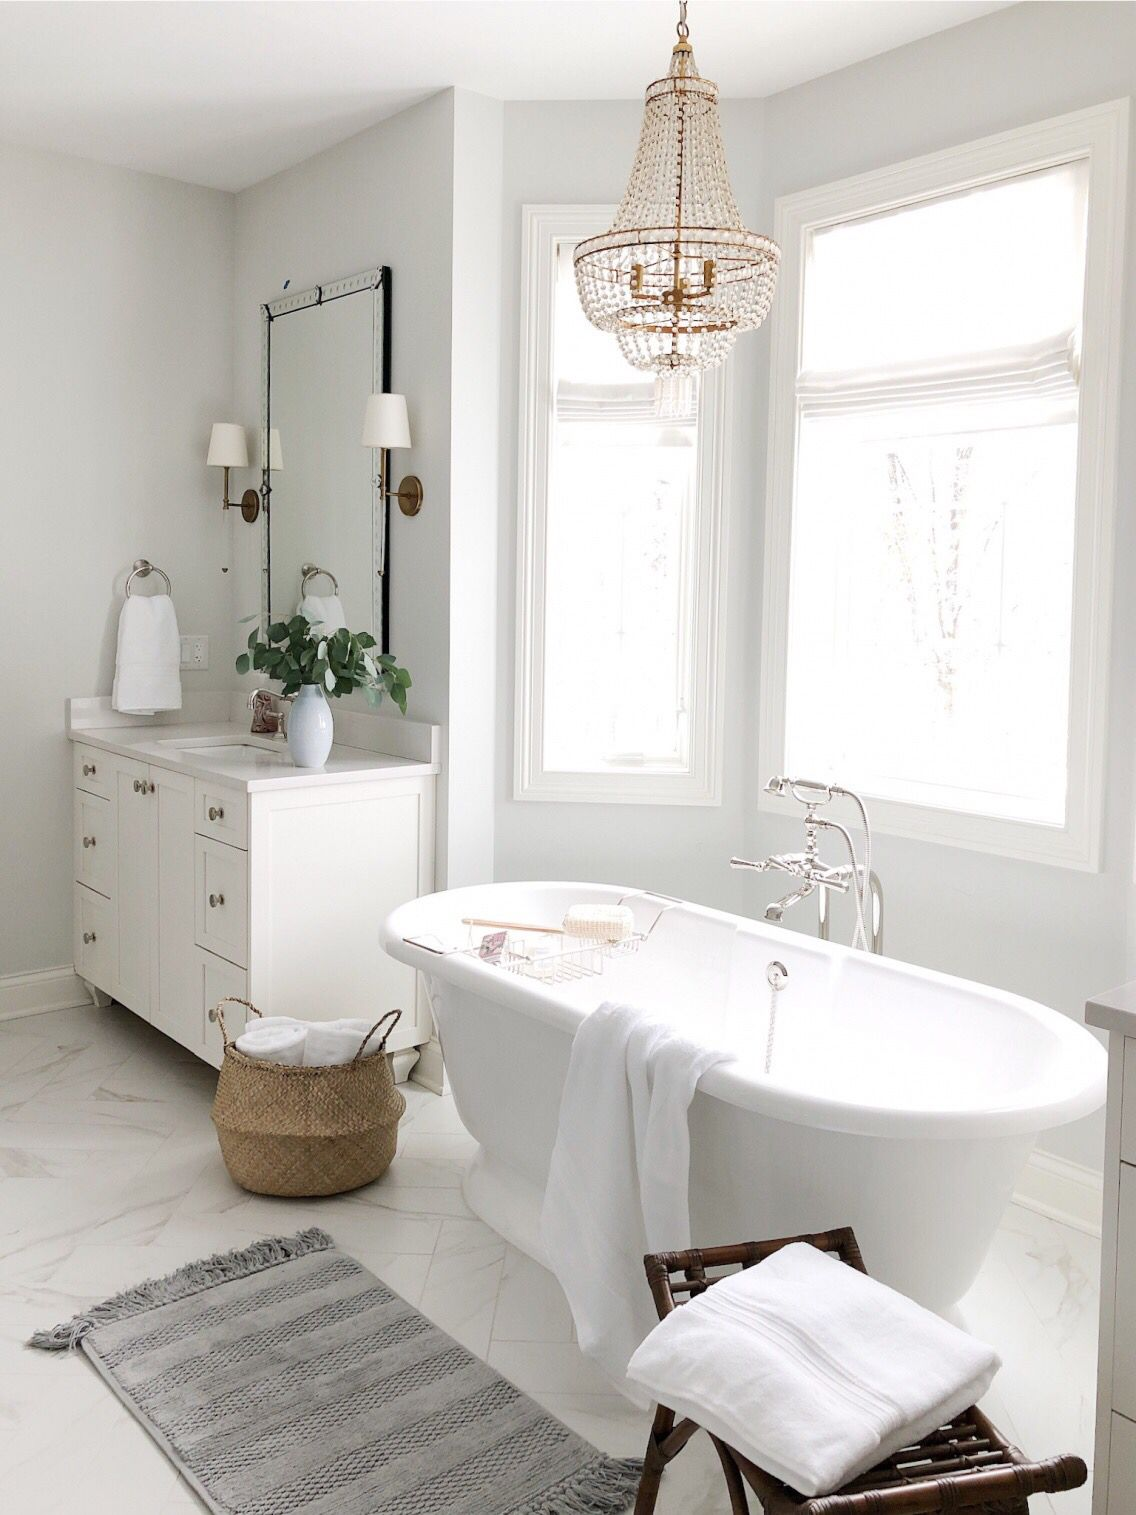 awesome pottery barn bathrooms designs | Bathroom Refresh with Pottery Barn | COLLABORATE: HOME ...